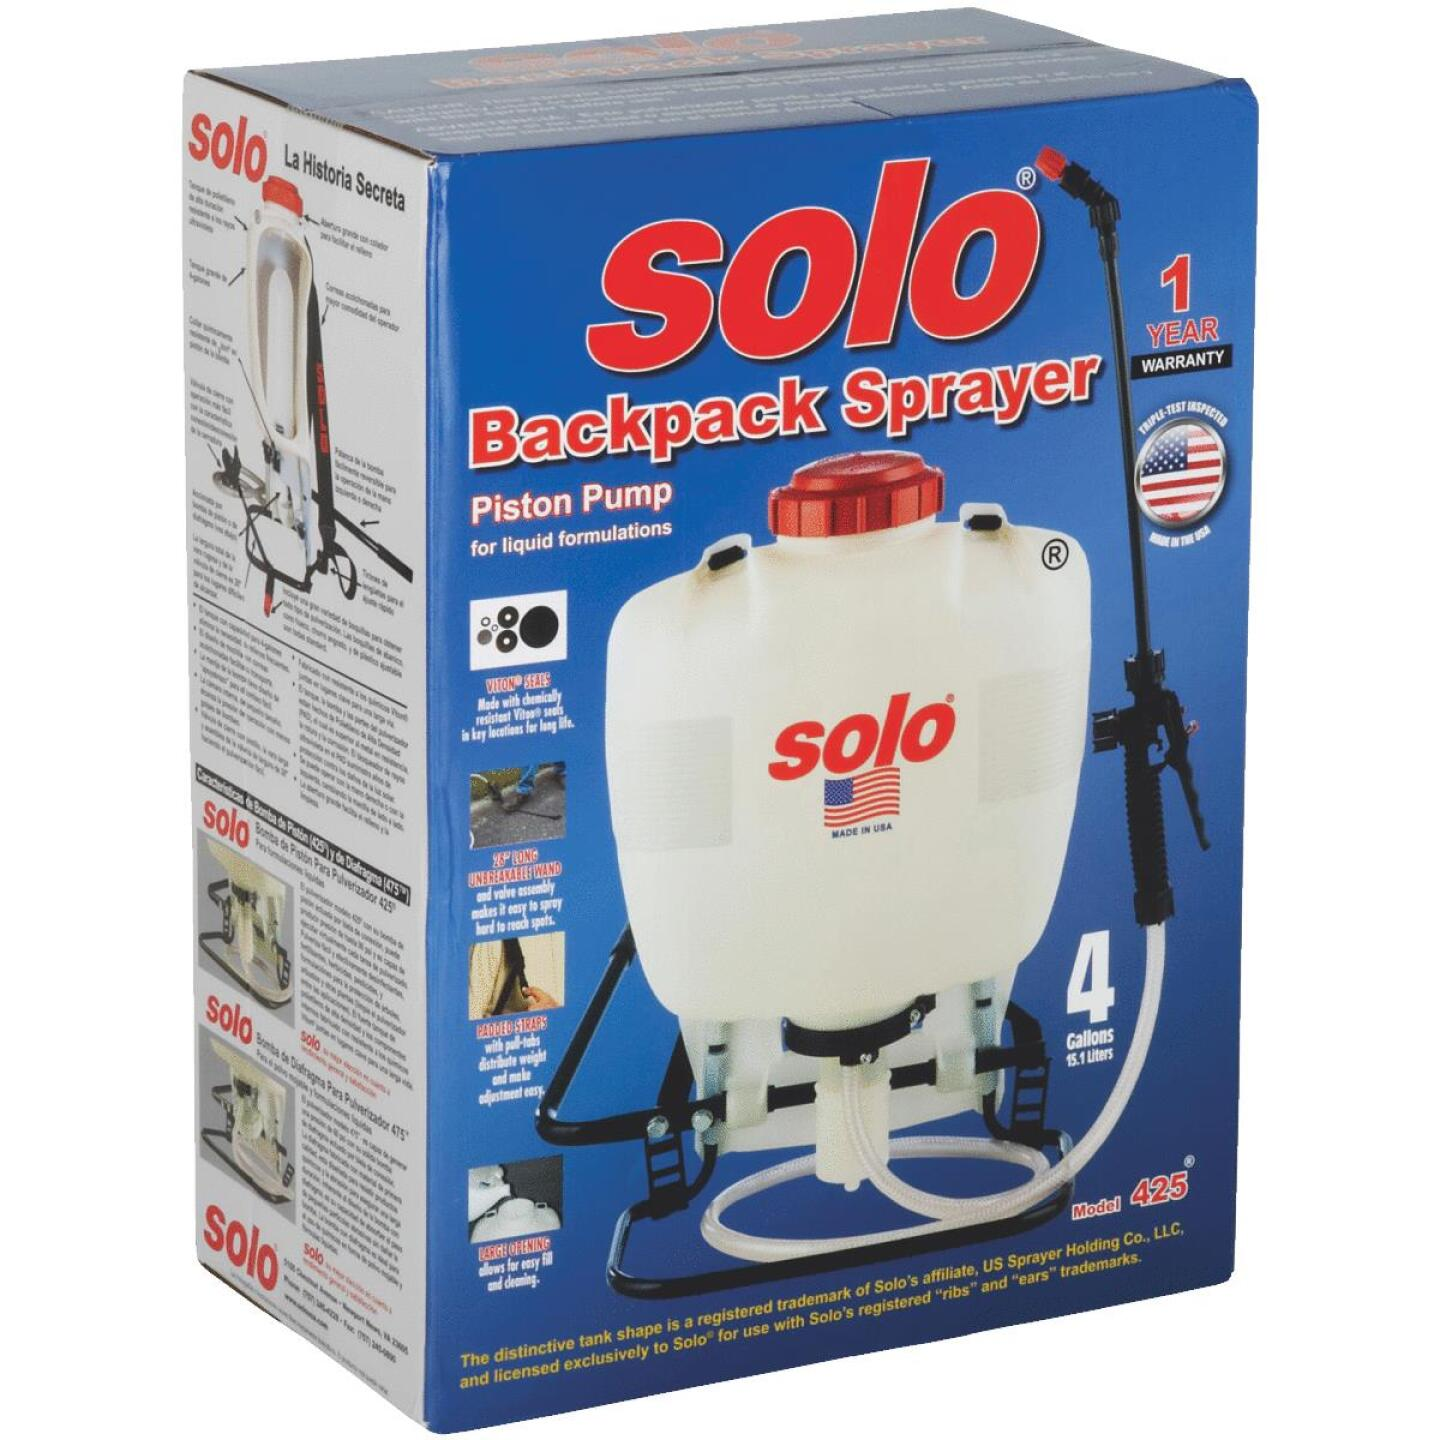 Solo 425 4 Gal. Backpack Sprayer Image 2